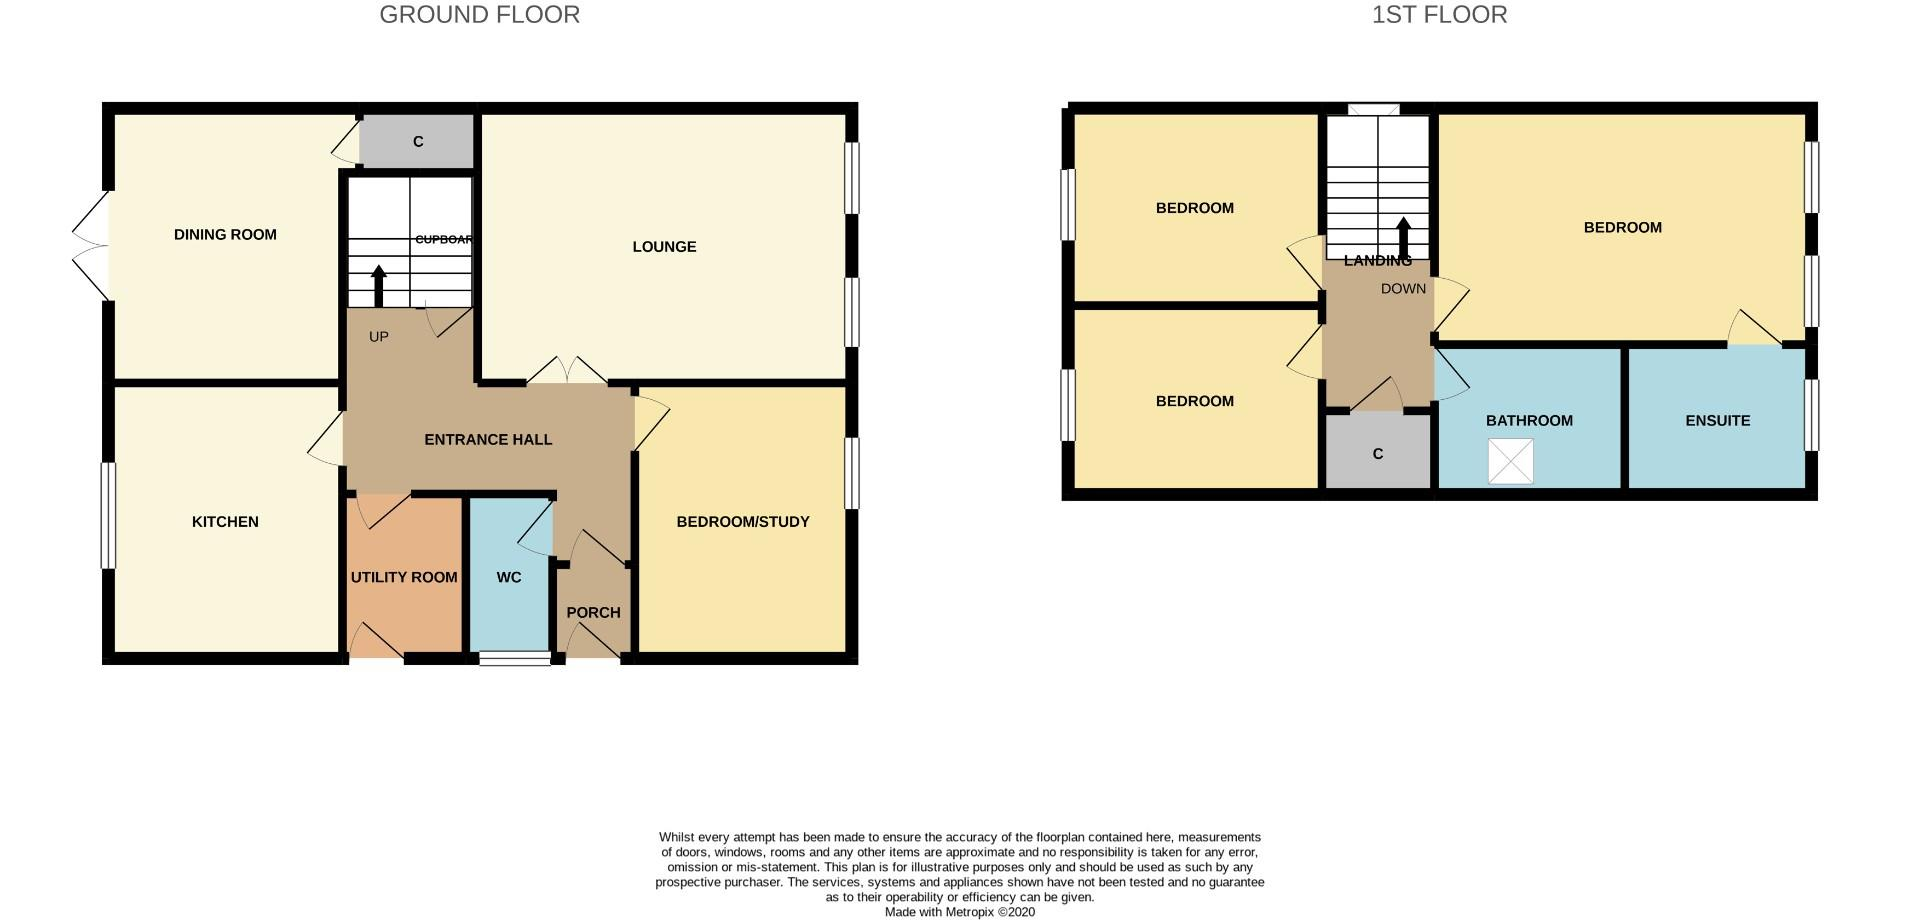 Floorplans For Dalestones, West Hunsbury